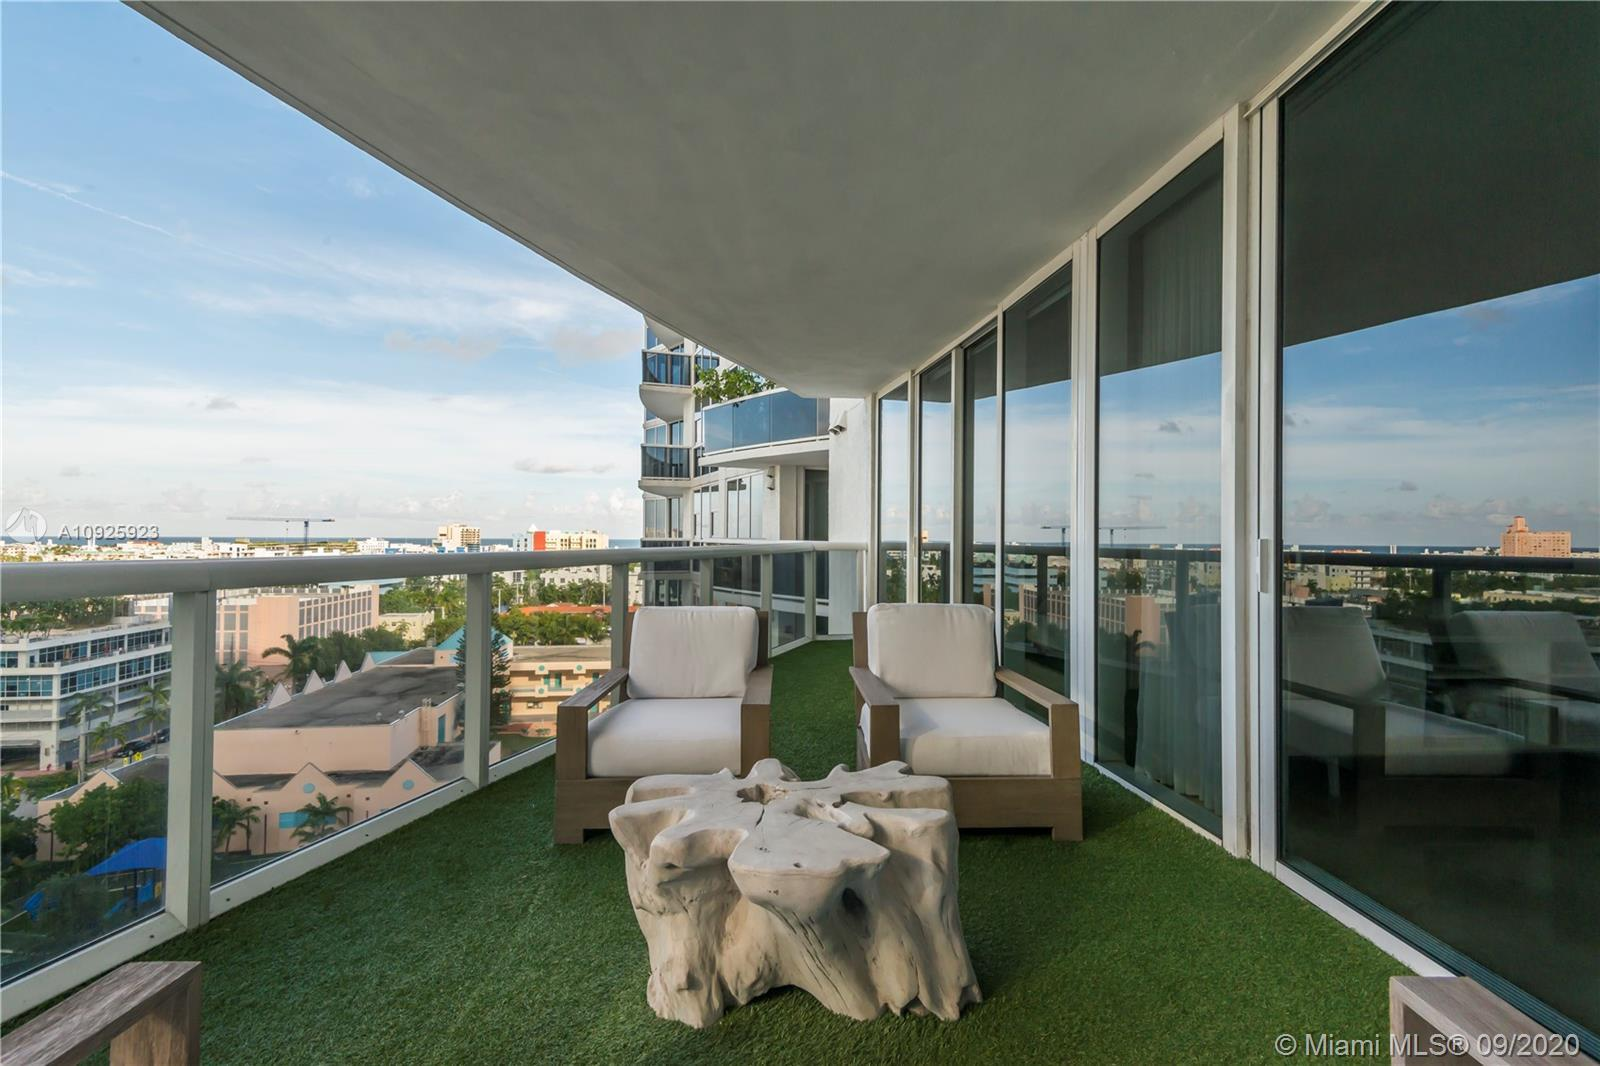 This fully renovated, designer finished residence has impeccable features throughout with an open fl